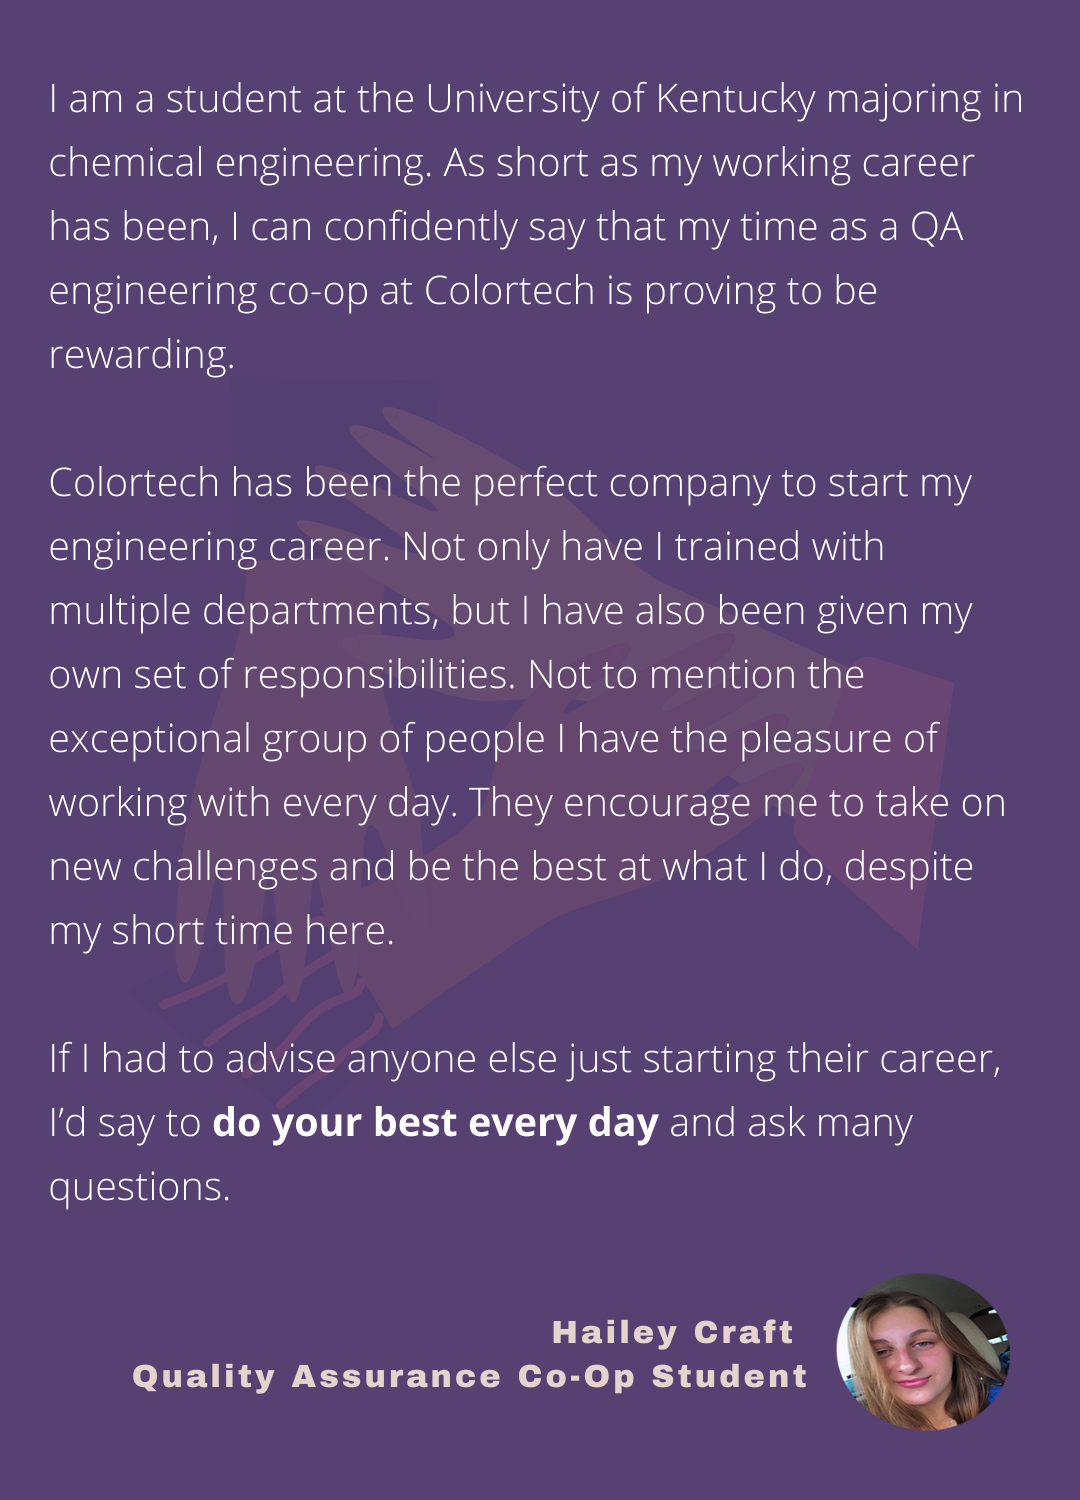 Hailey Craft, Quality Assurance Engineering Co-Op student, says Colortech has been the perfect company to start her engineering career. She encourages anyone else starting their career to do their best every day and ask many questions.